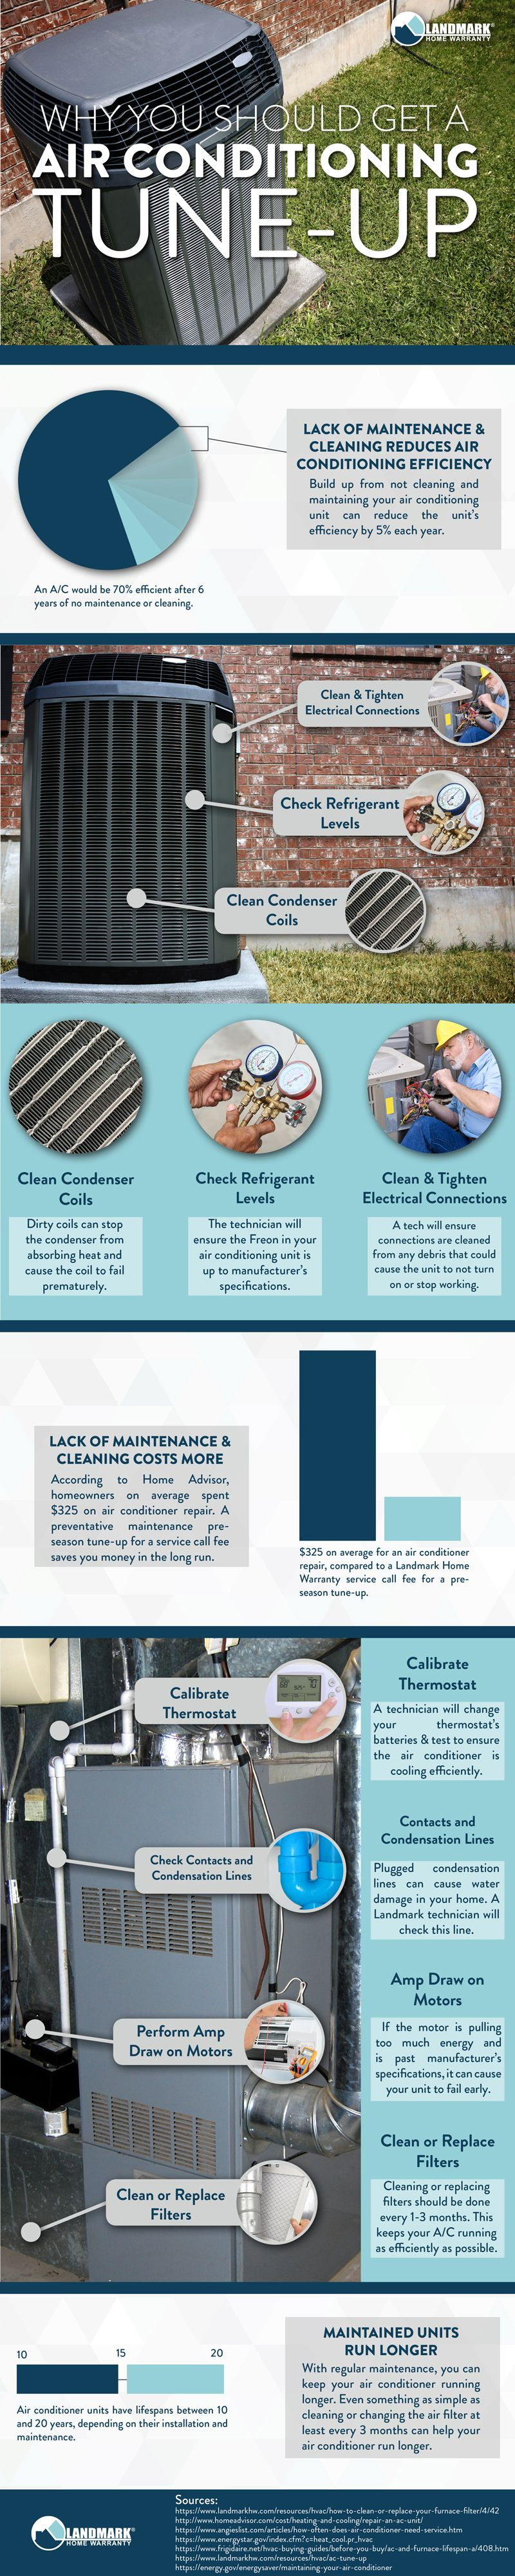 Things To Learn How To Do To Tune Up A C Refrigeration And Air Conditioning Air Conditioning Unit Air Conditioning